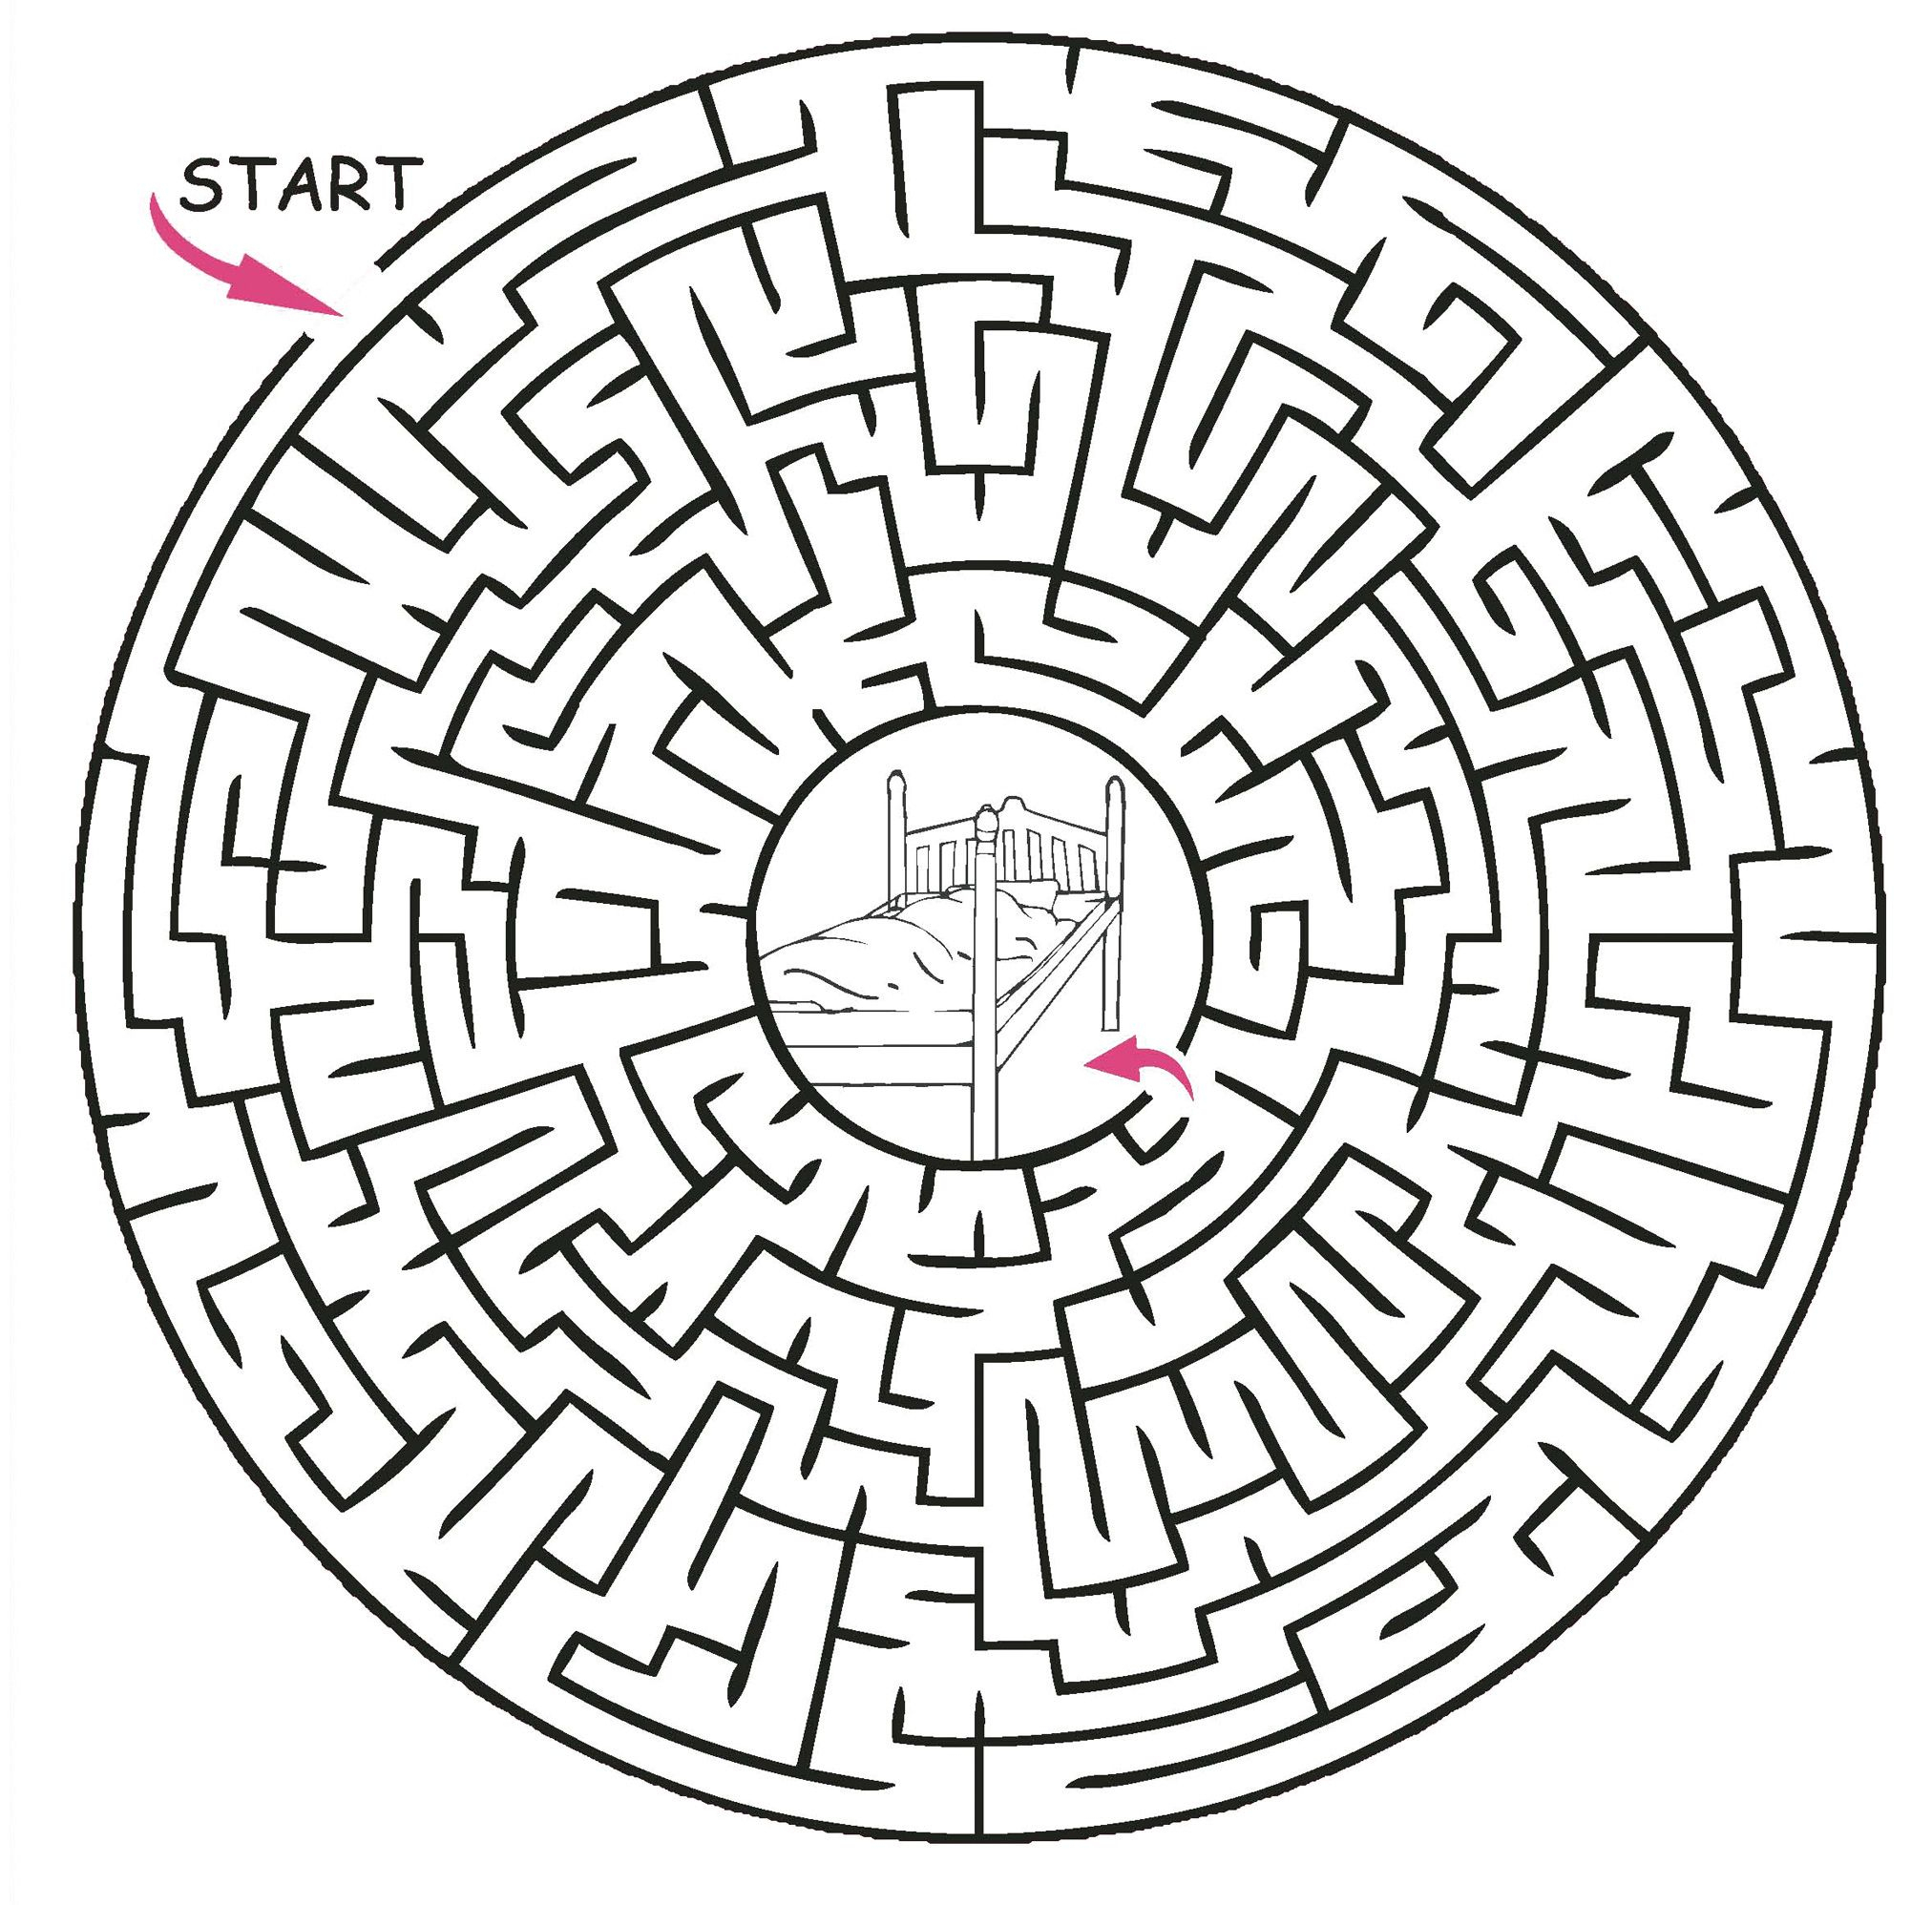 Printable Maze Puzzles - Google Search | My Garden | Mazes For Kids - Printable Labyrinth Puzzles